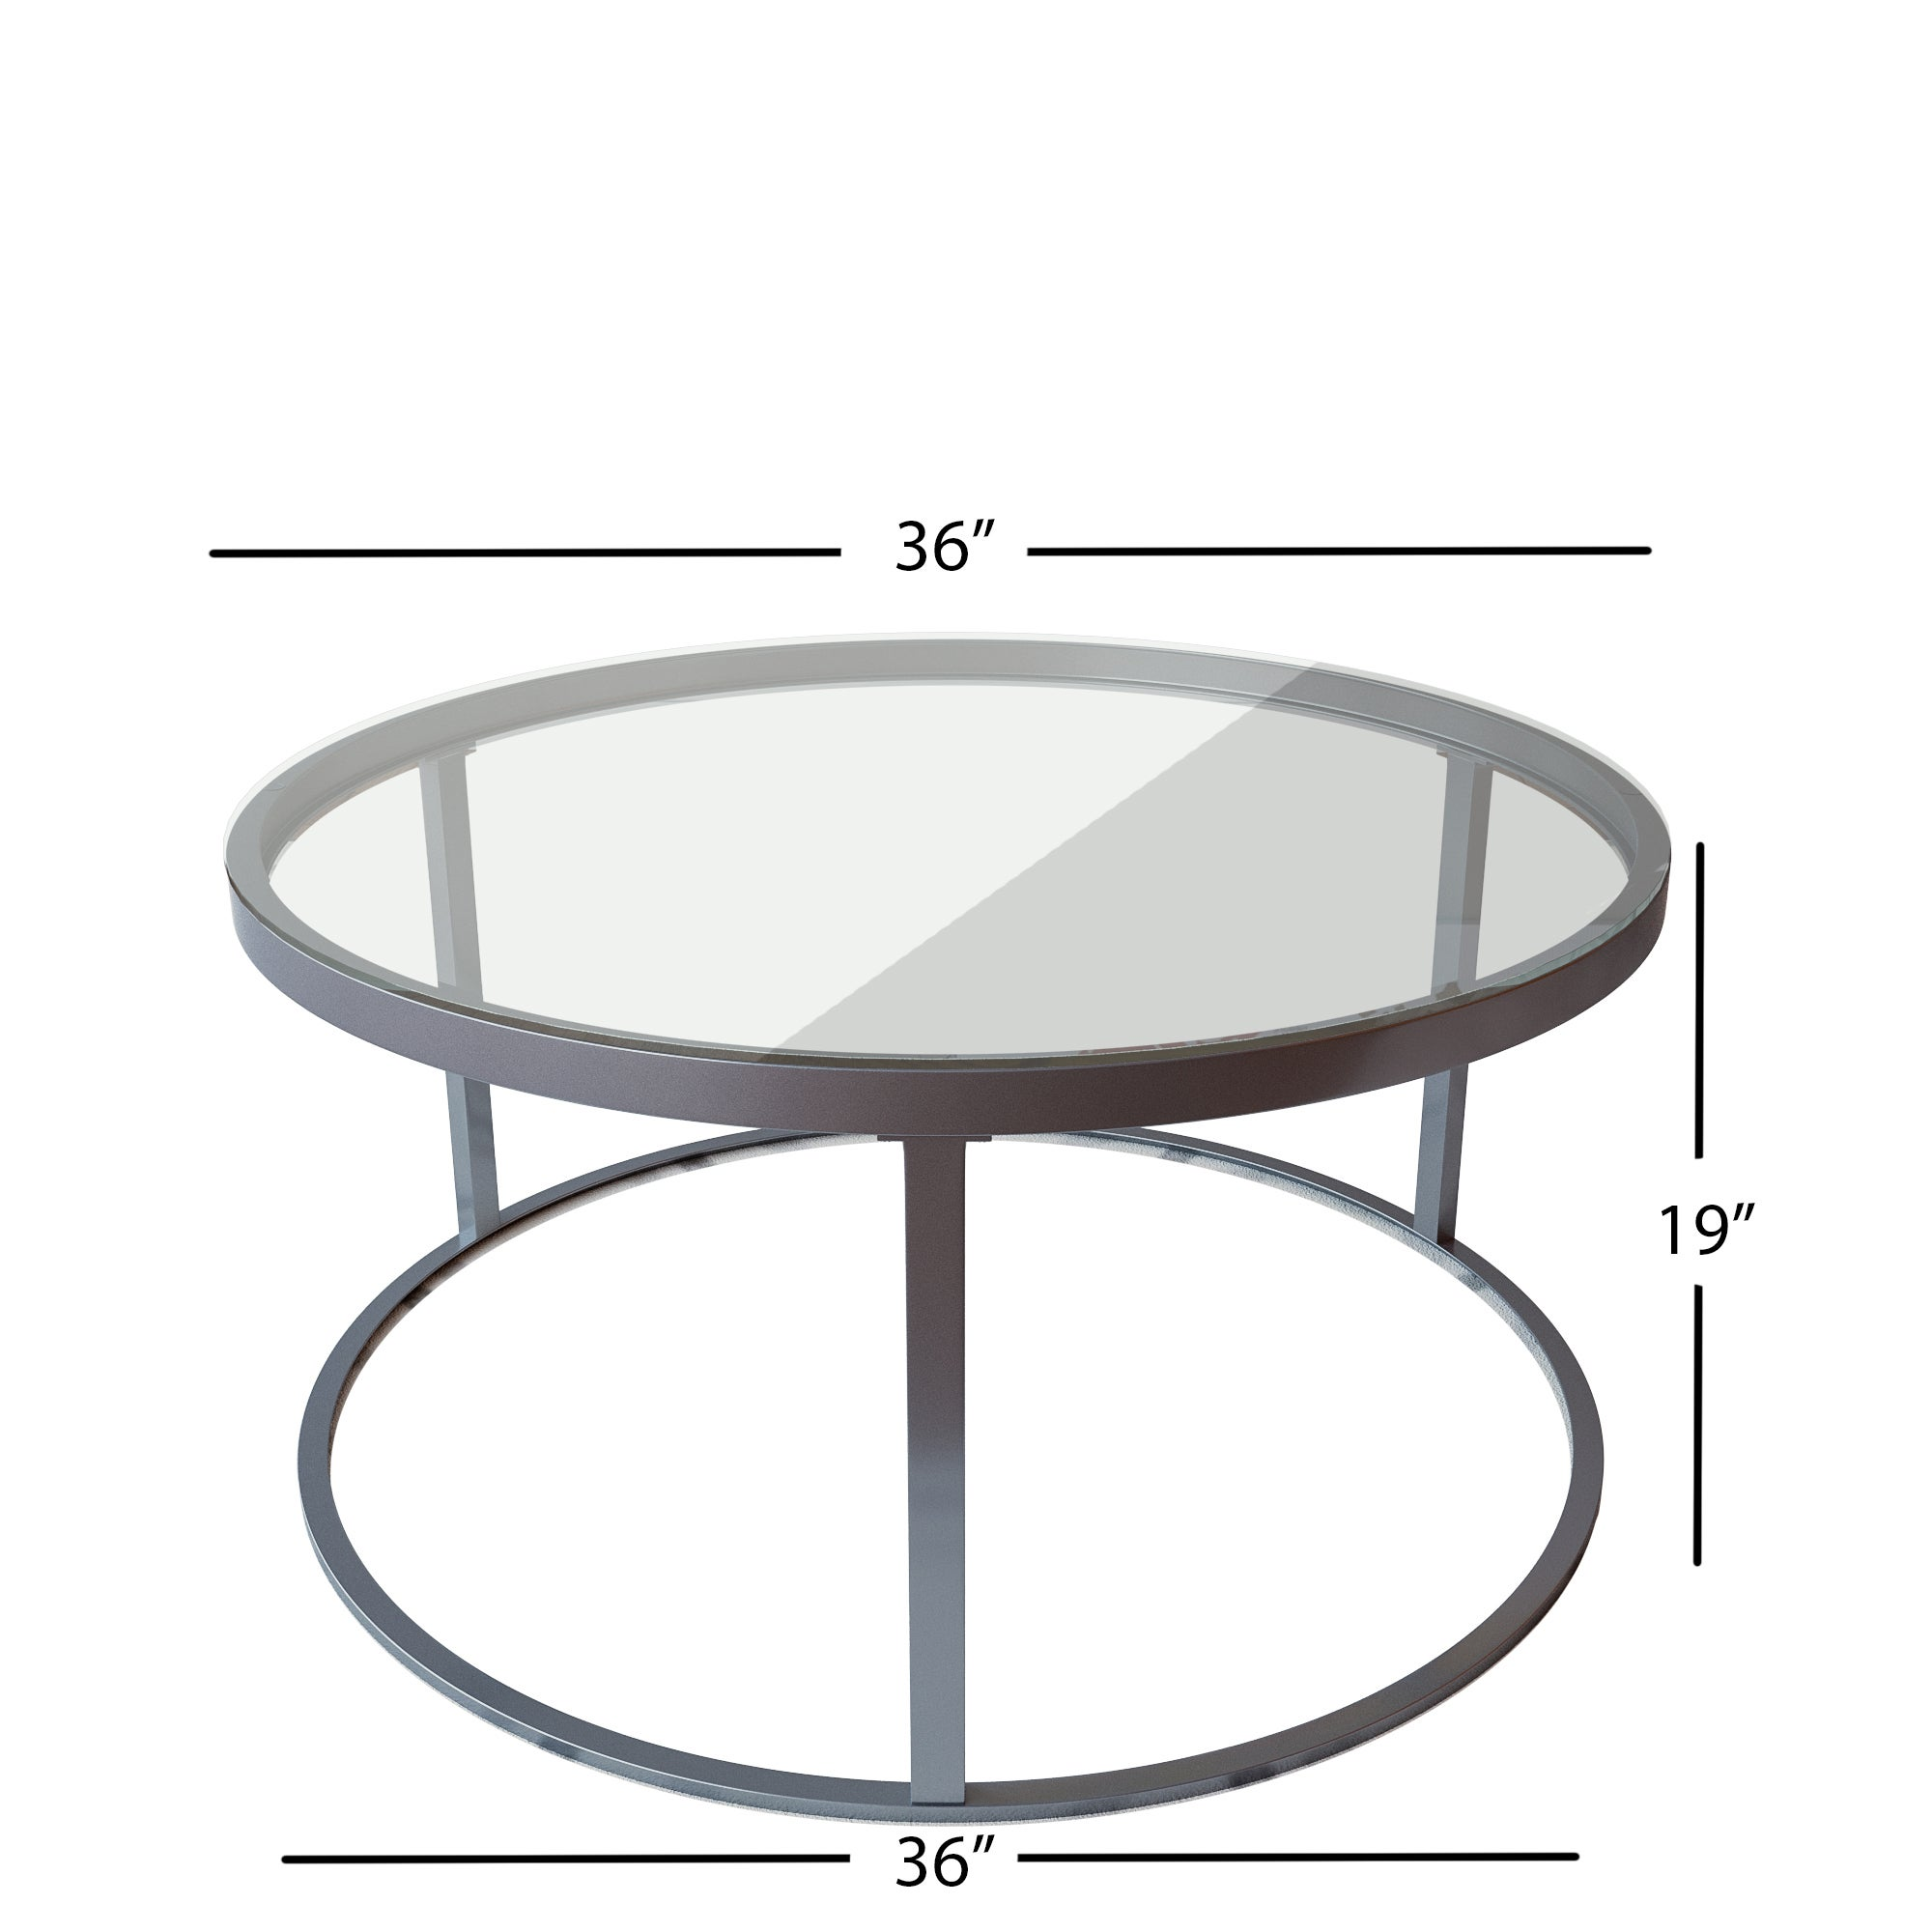 Clay Alder Home Round Glass Top Metal Coffee Table   Free Shipping Today    Overstock.com   14037744